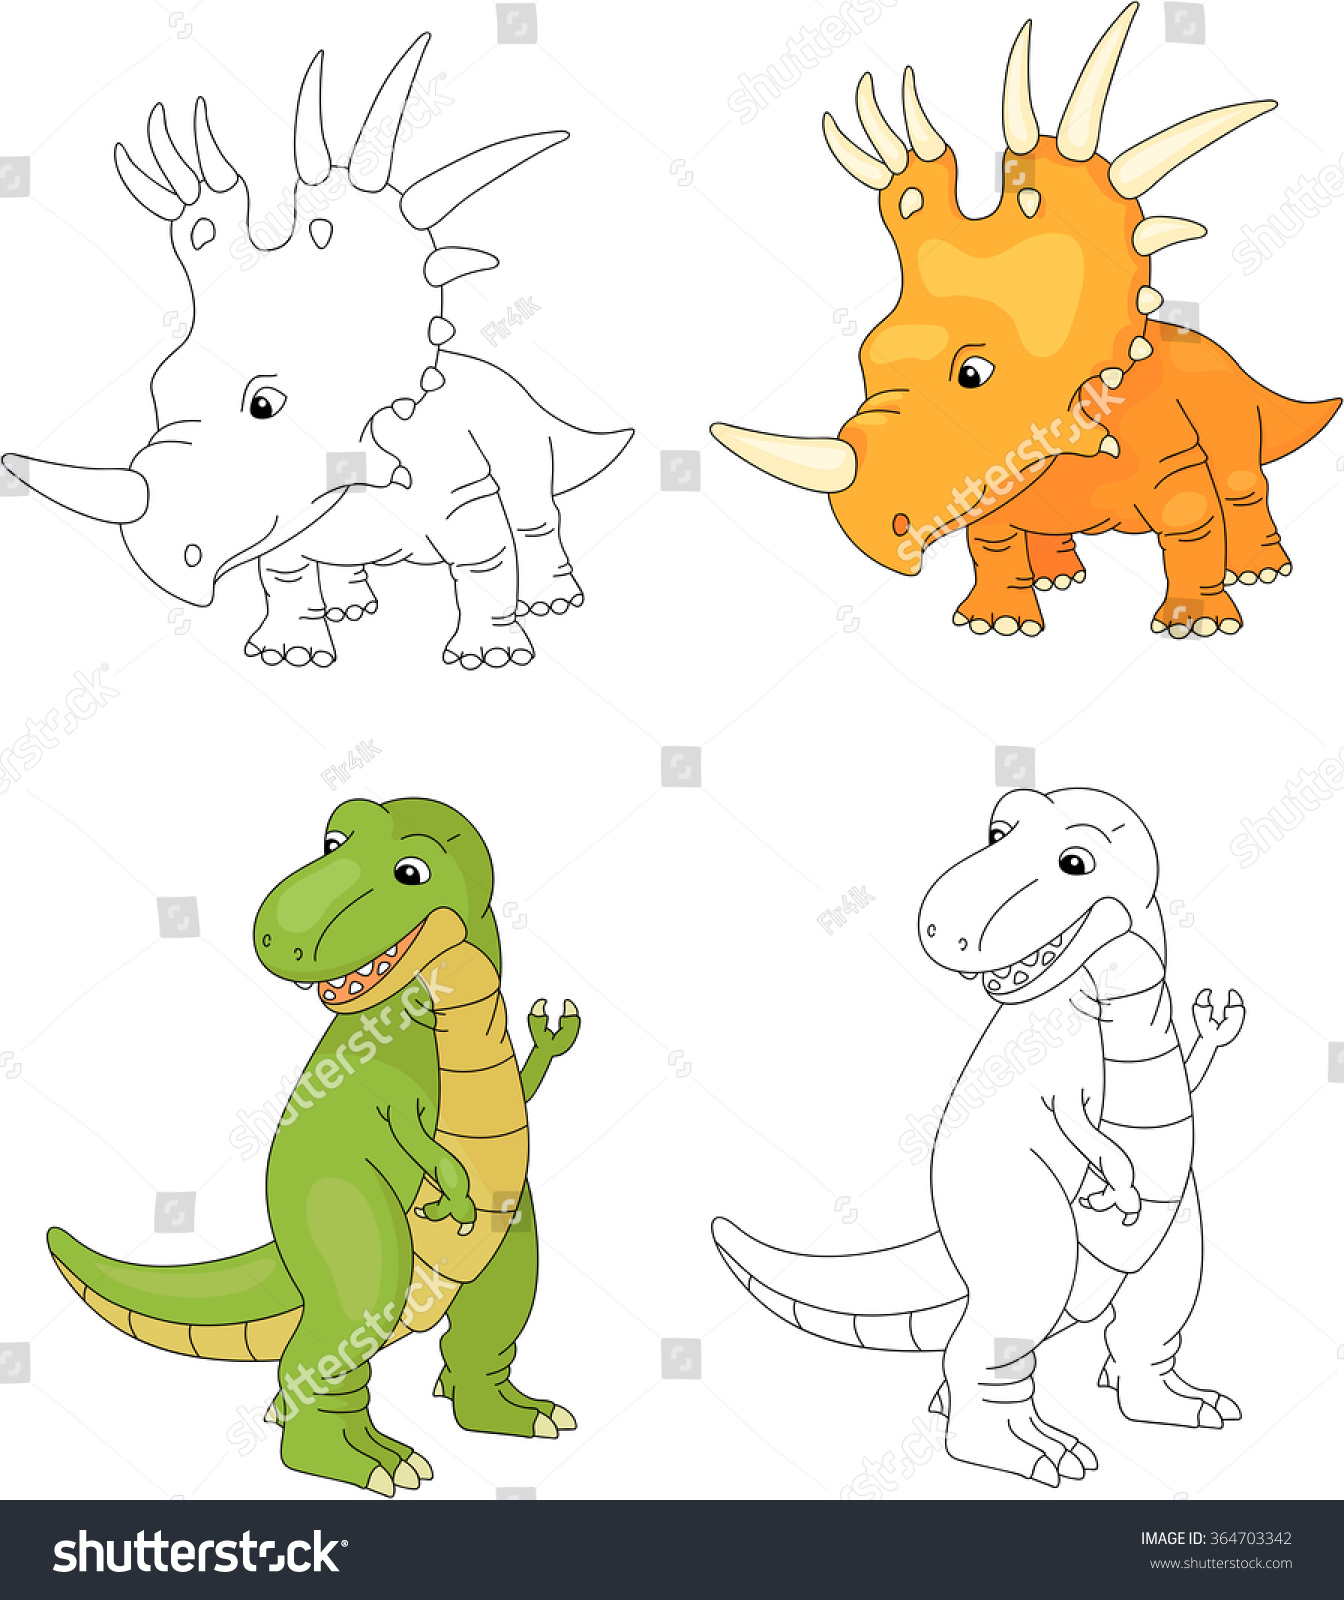 Co color books for kids to color - Co Color Books Game Funny Cute Tyrannosaurus And Styracosaurus Educational Game For Kids Coloring Book